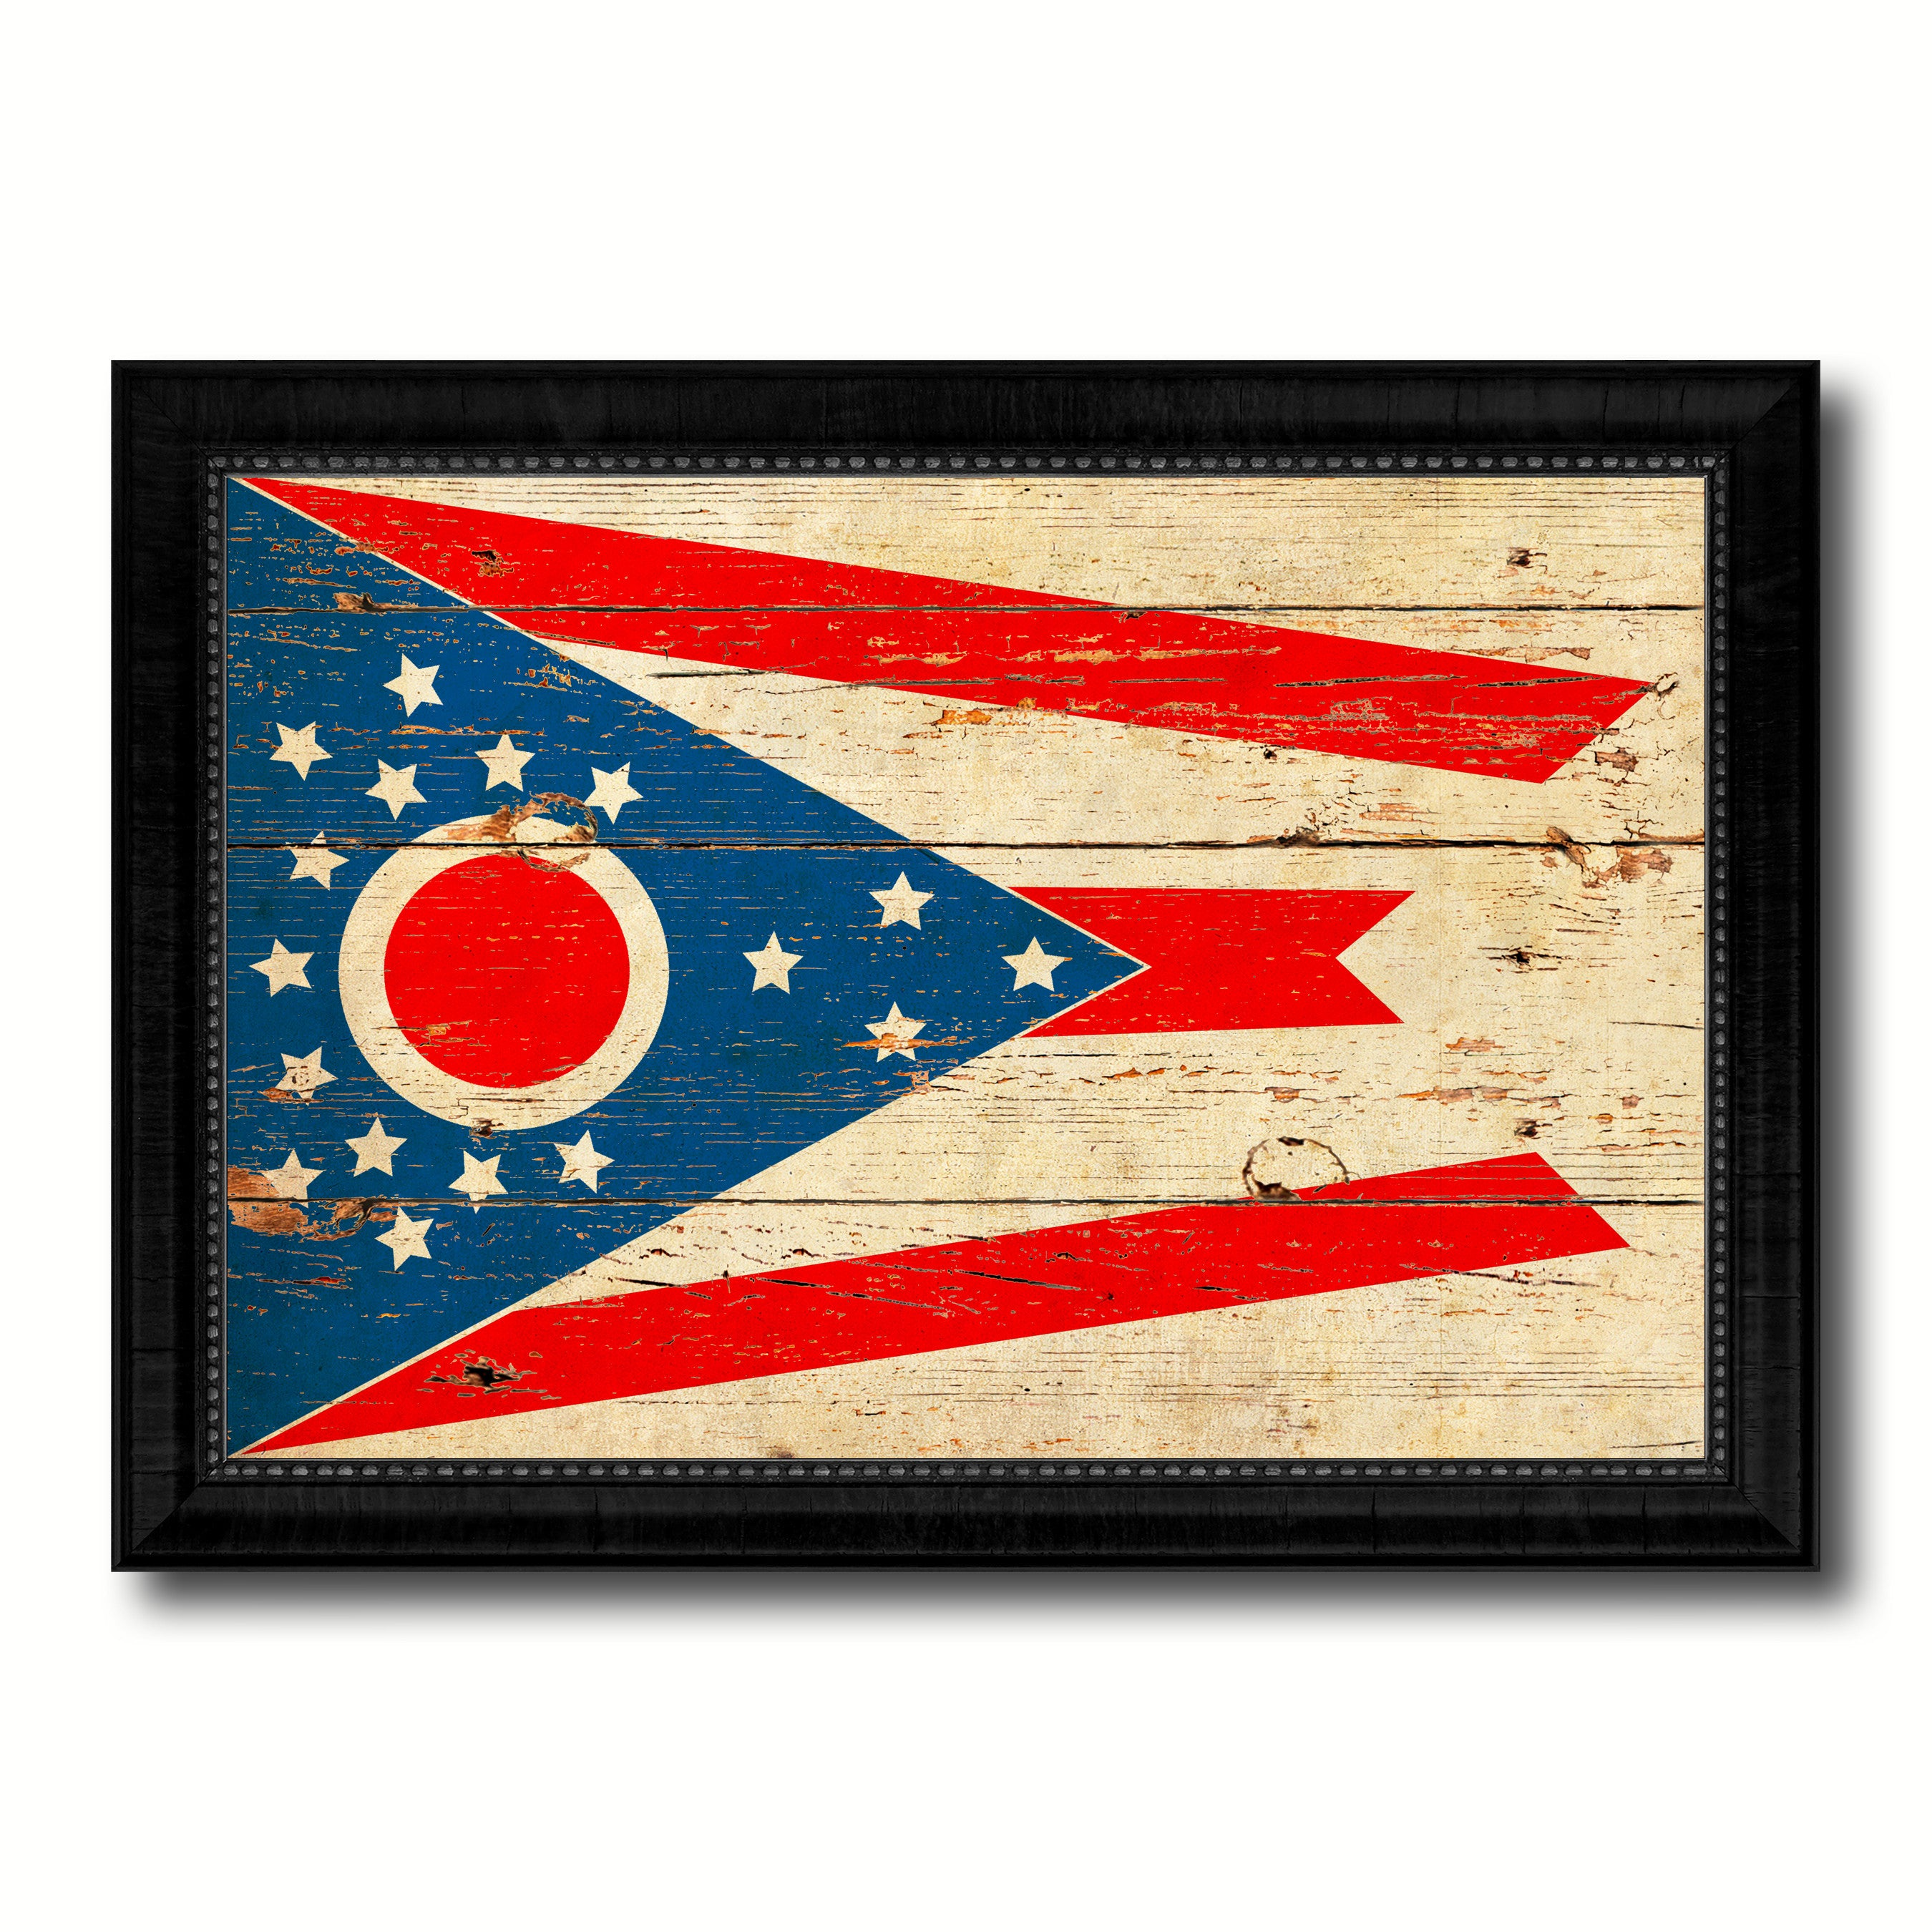 Ohio State Vintage Flag Canvas Print with Black Picture Frame Home Decor Man Cave Wall Art Collectible Decoration Artwork Gifts